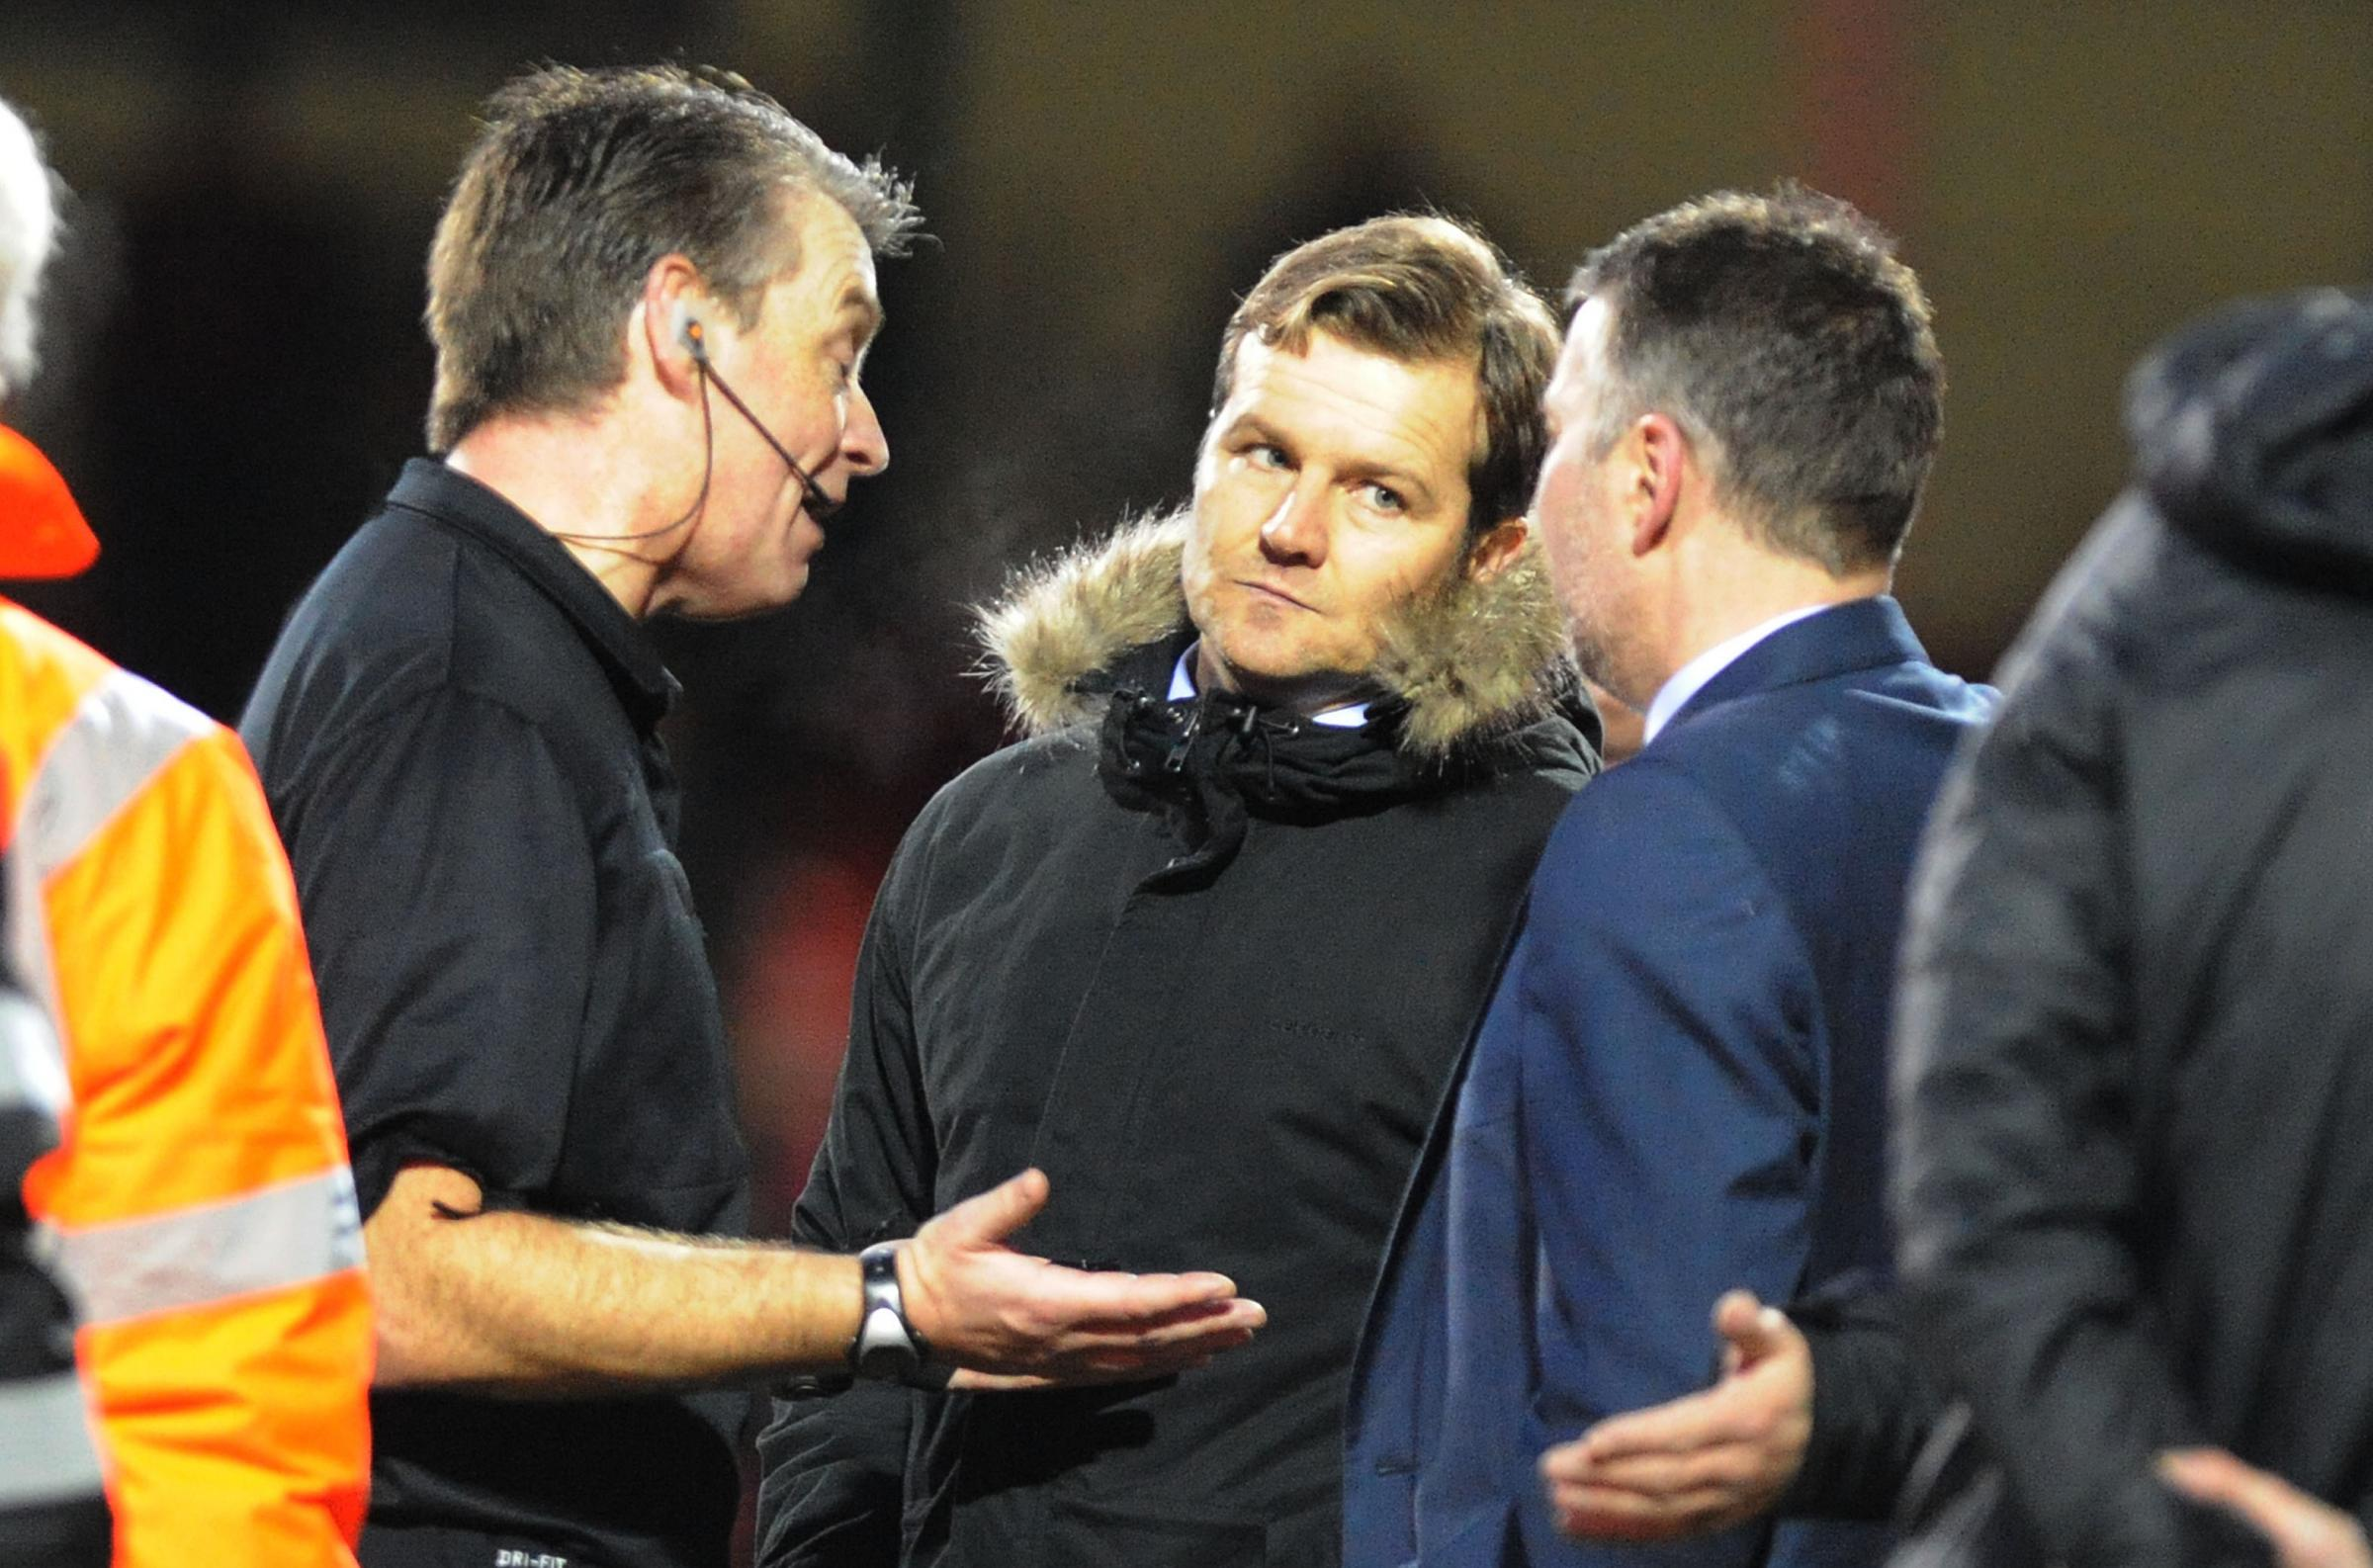 Mark Cooper shares a look with Peterborough boss Darren Ferguson